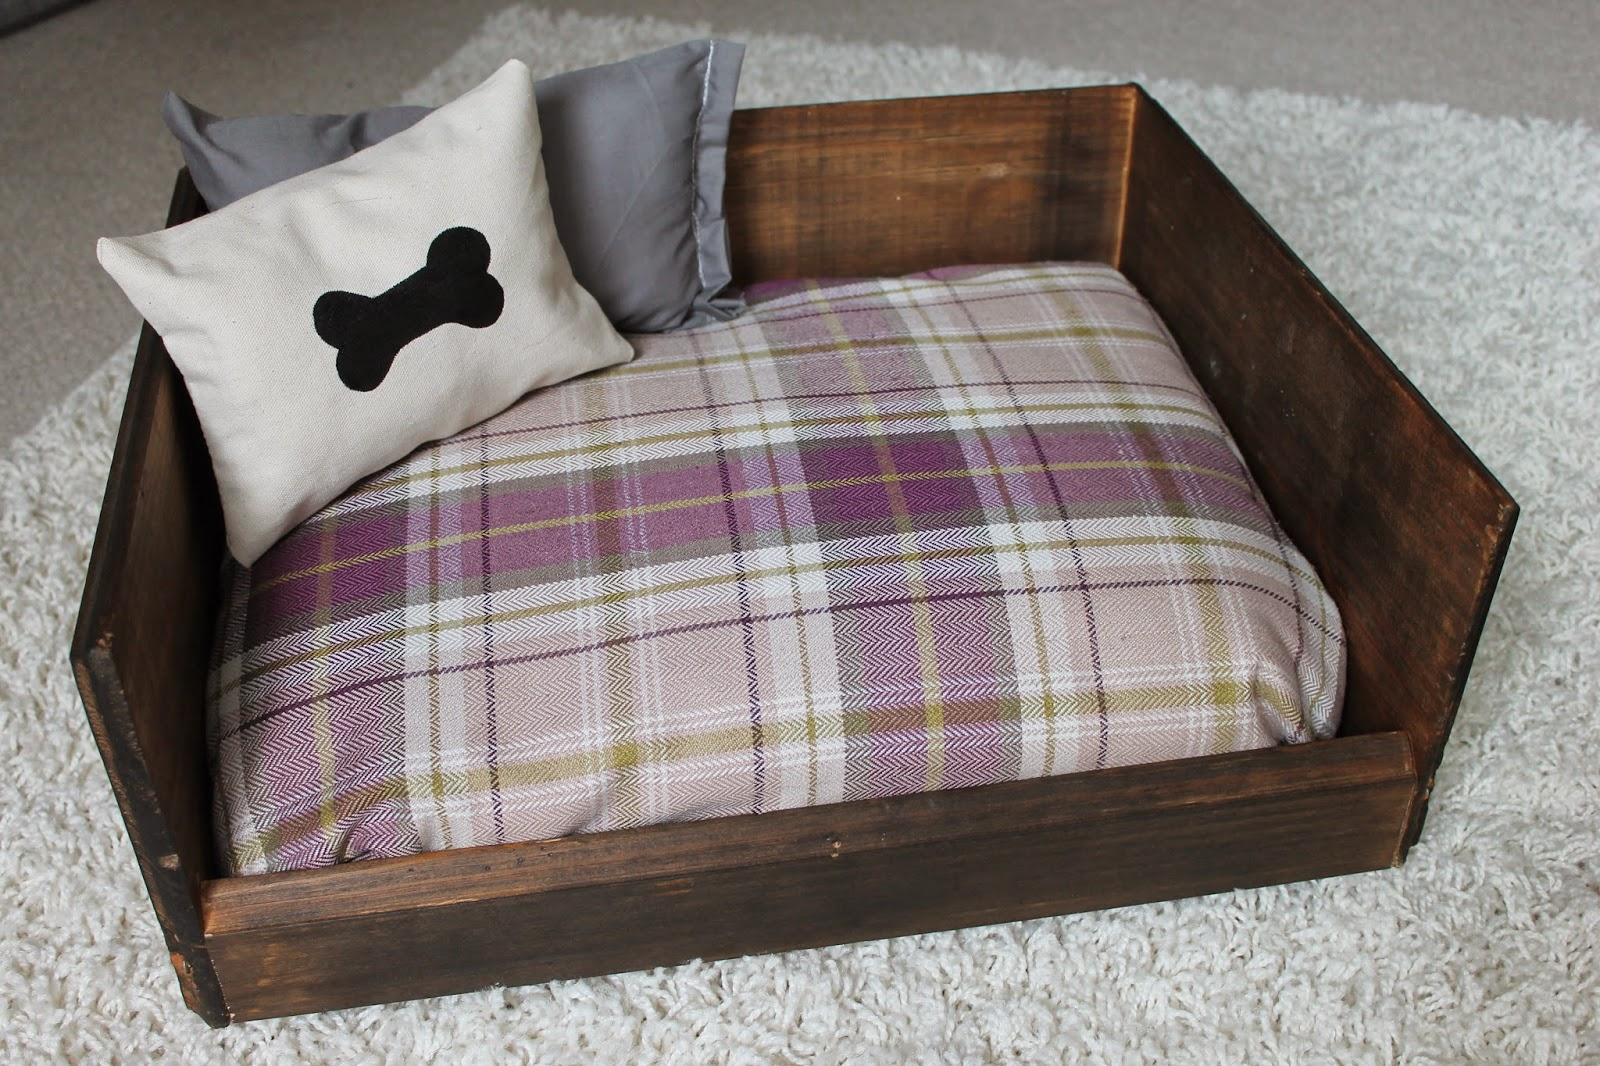 Easy Diy Dog Beds For Your Furry Friends Picky Stitch